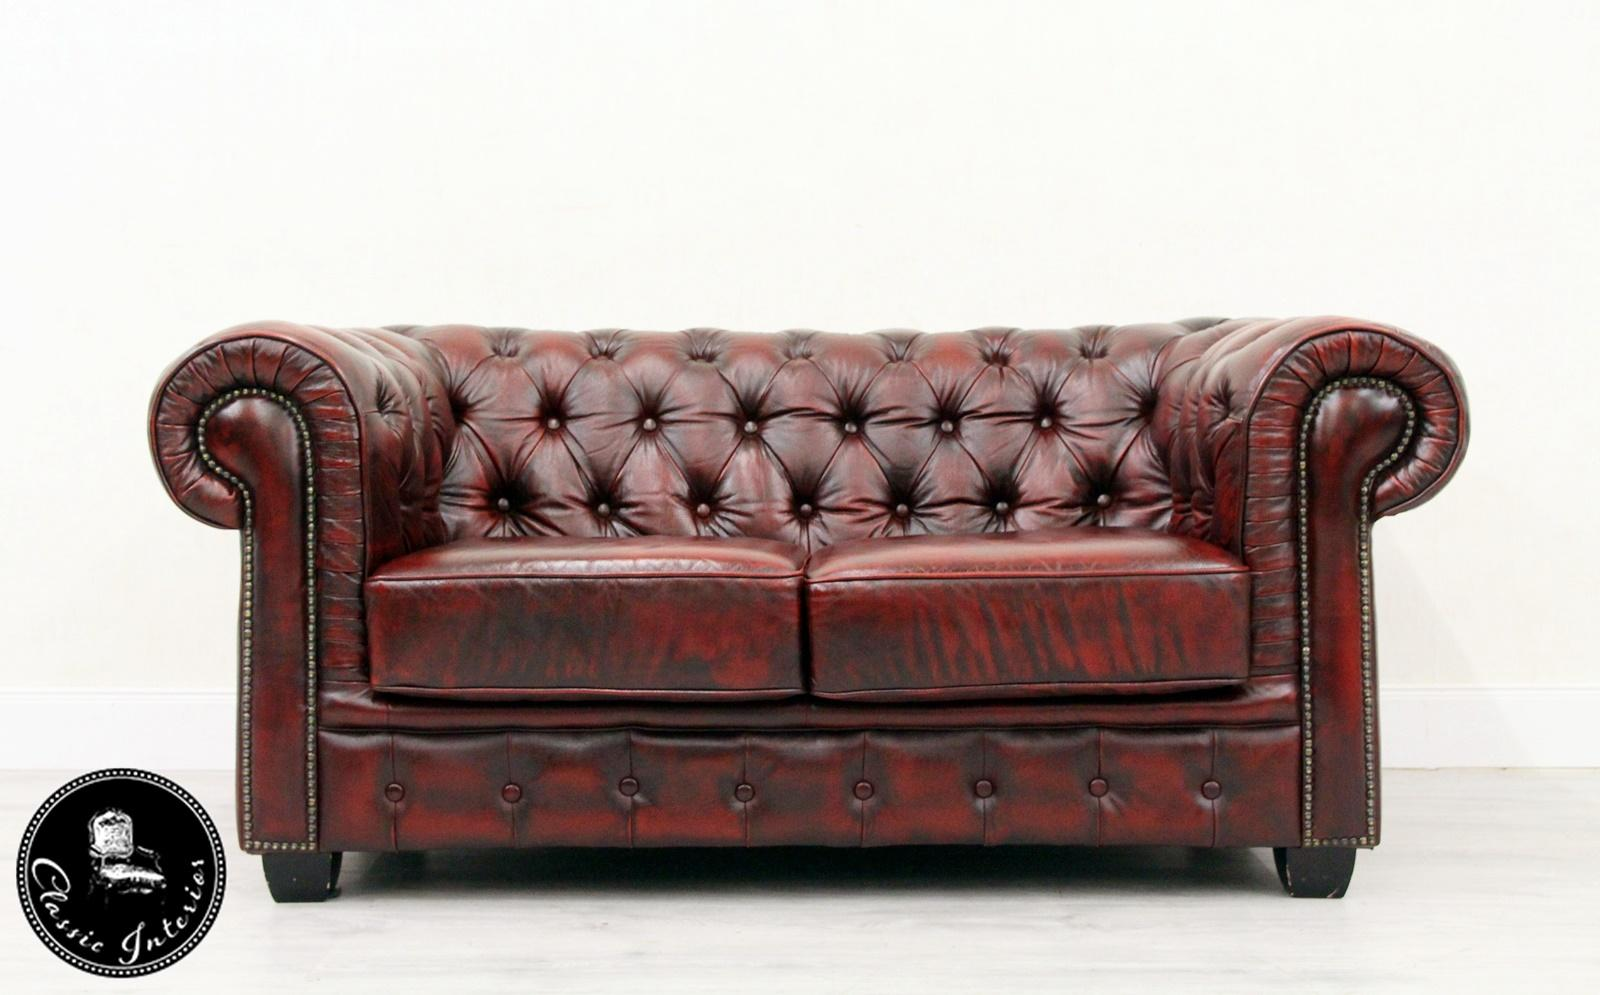 Vintage Couch Chesterfield Sofa Leather Antique Vintage Couch English Armchair Old